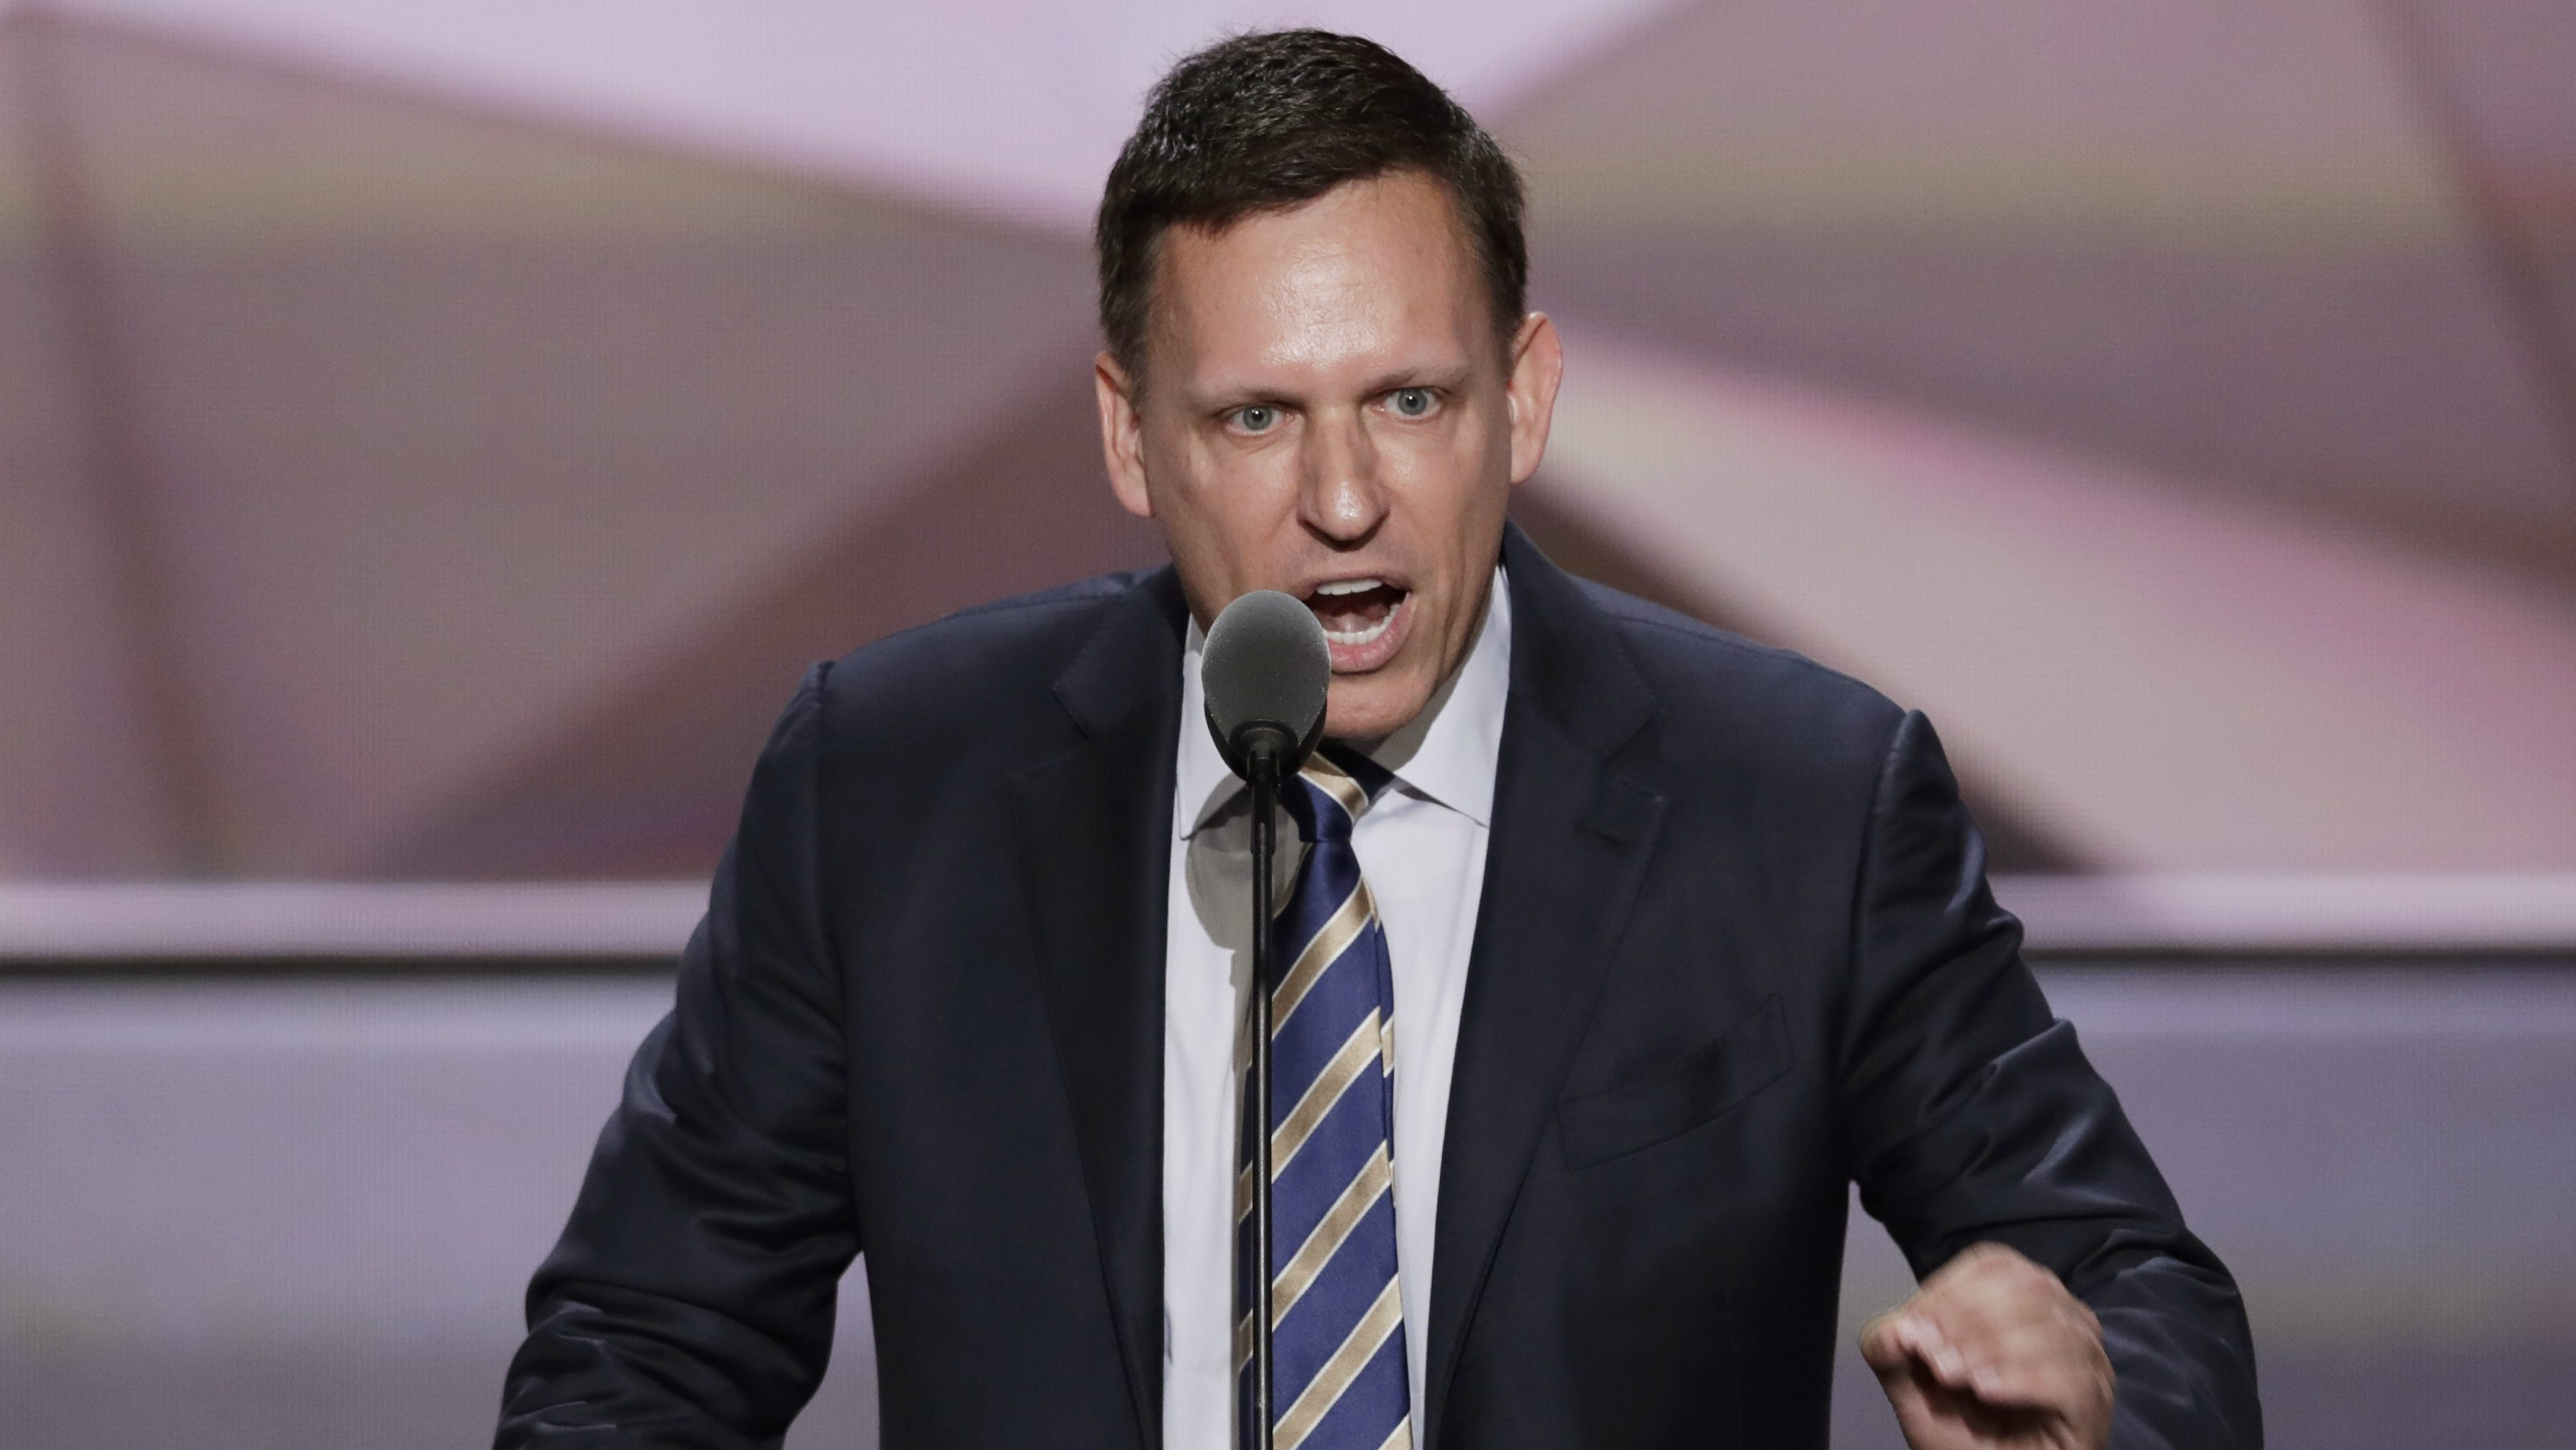 FILE - In this July 21, 2016, file photo, entrepreneur Peter Thiel speaks during the final day of the Republican National Convention in Cleveland. Thiel was able to gain New Zealand citizenship in 2011 despite never having lived in the country because a top lawmaker decided his entrepreneurial skills and philanthropy were valuable, documents reveal. Thiel didn't even have to leave California to become a new member of the South Pacific nation. (AP Photo/J. Scott Applewhite, File)